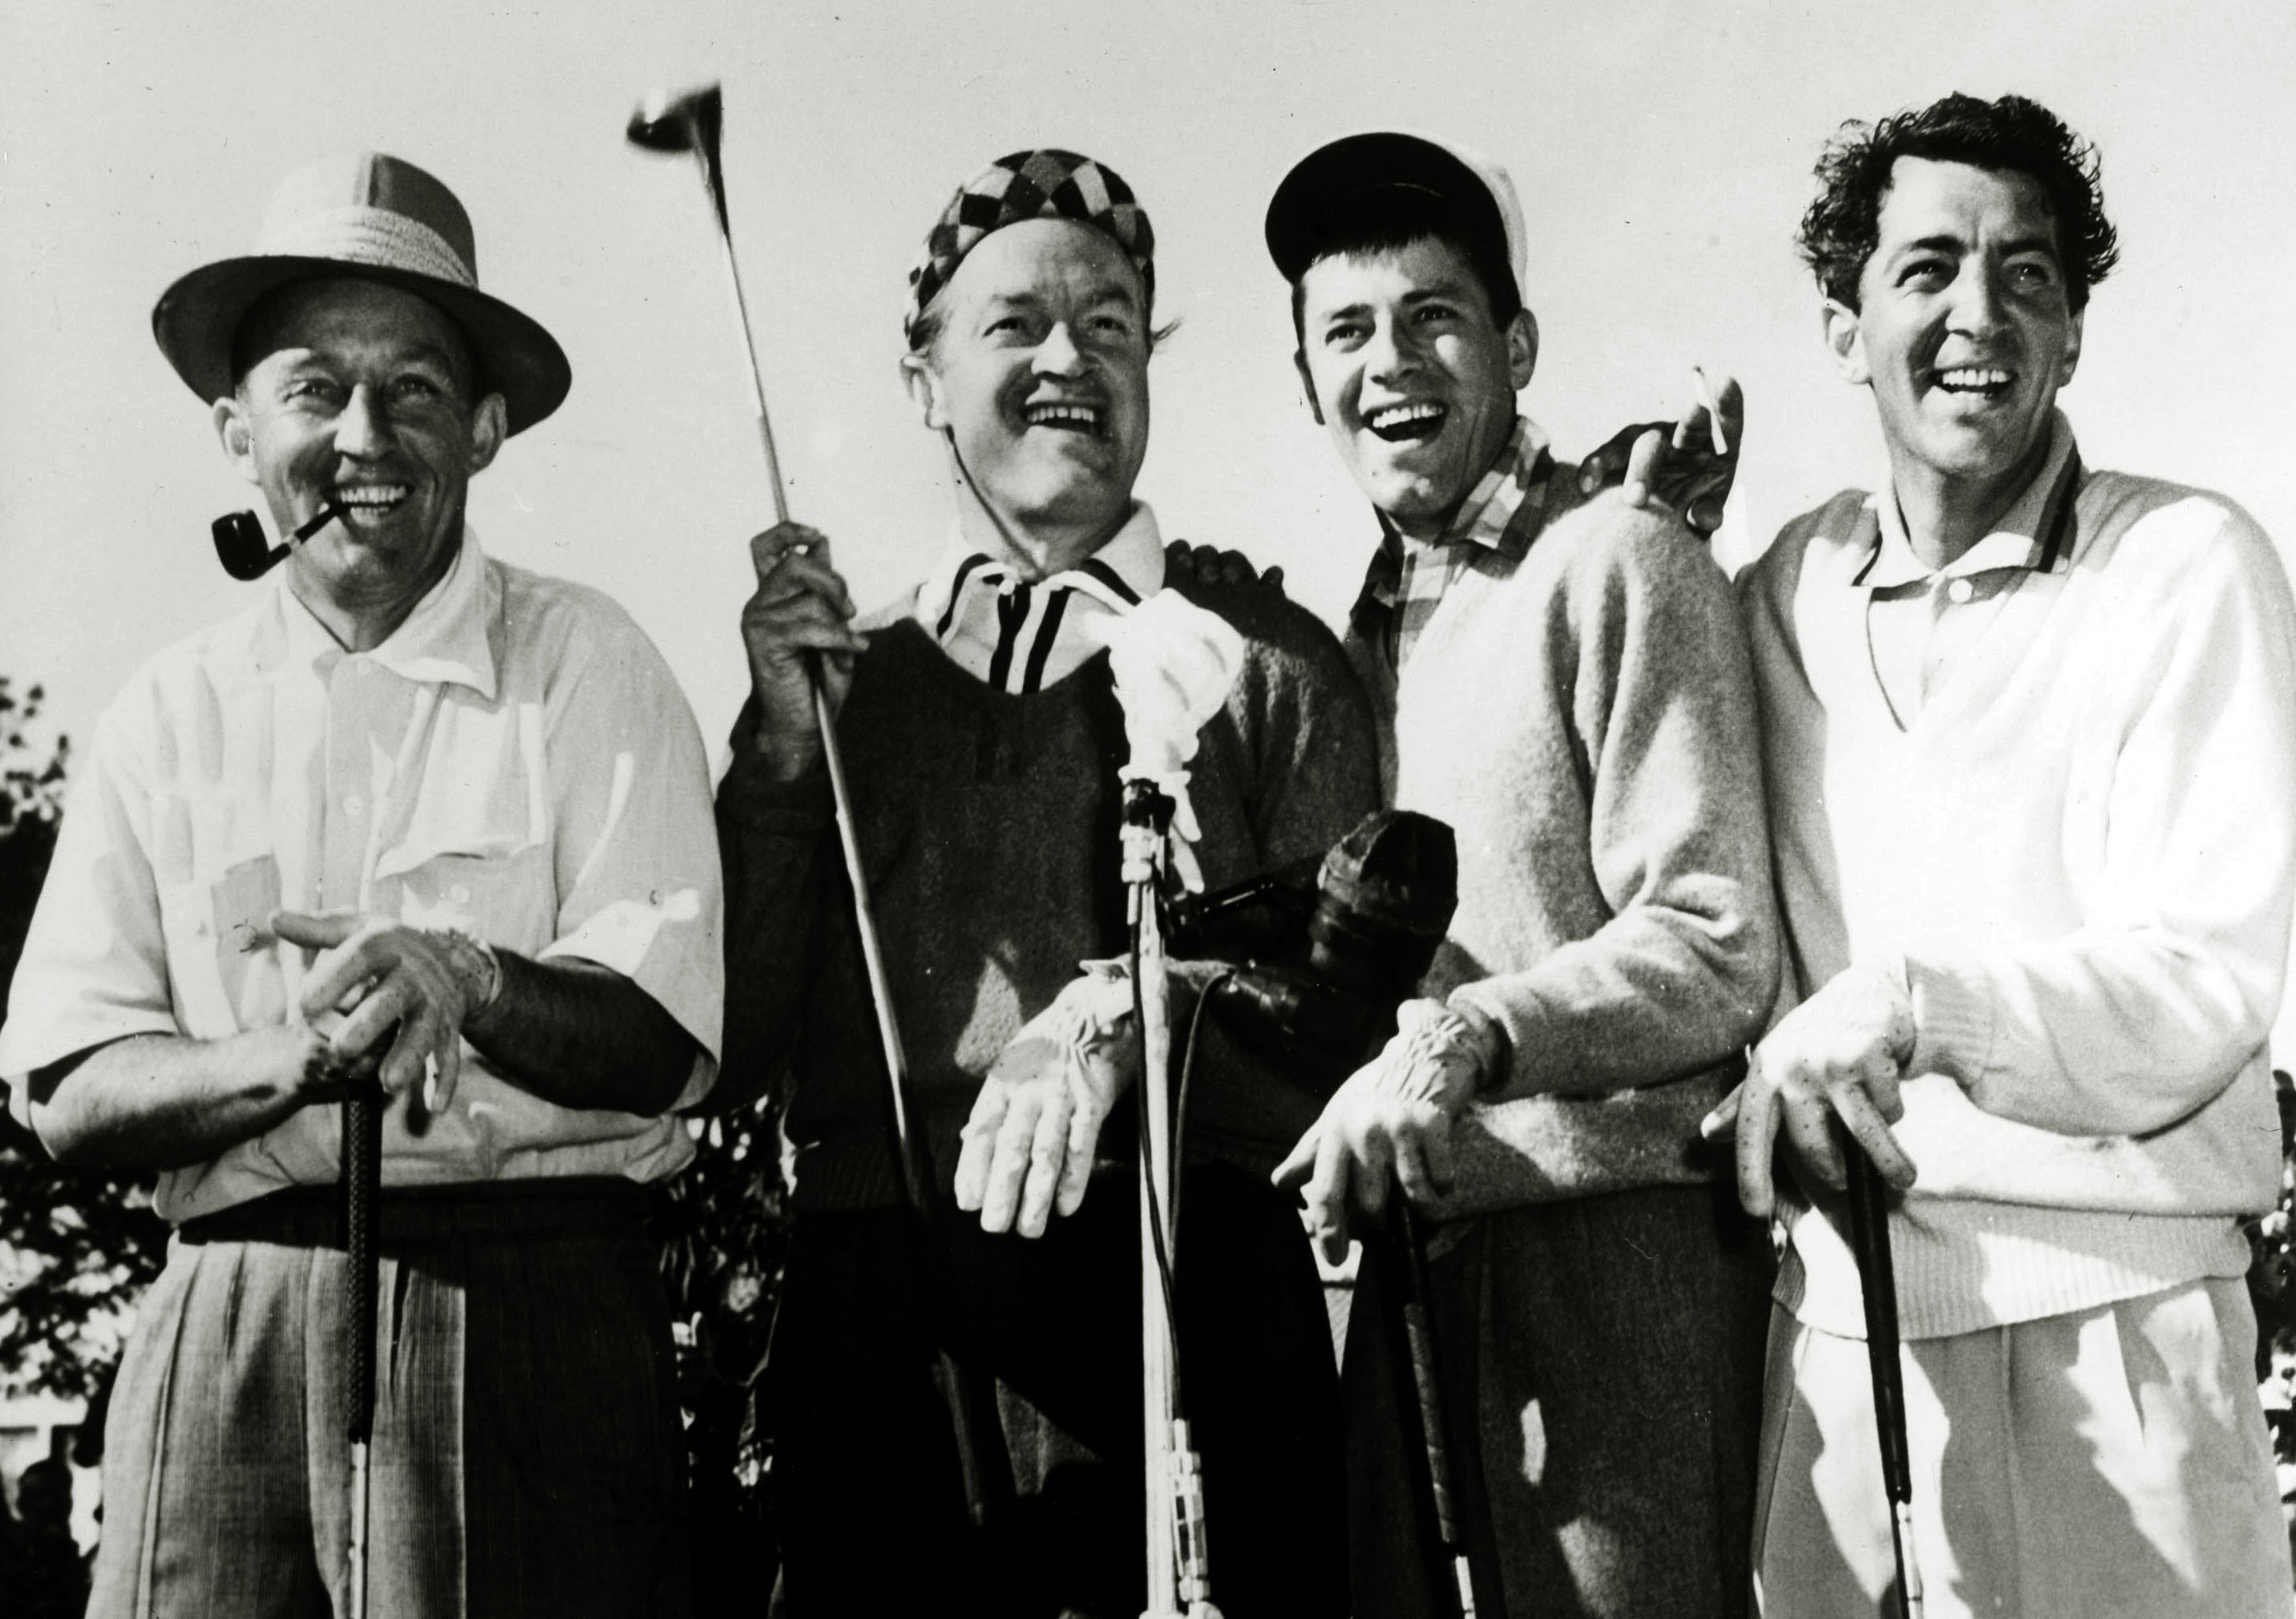 stage and screen music personalities pic circa 1950 s keen golfers